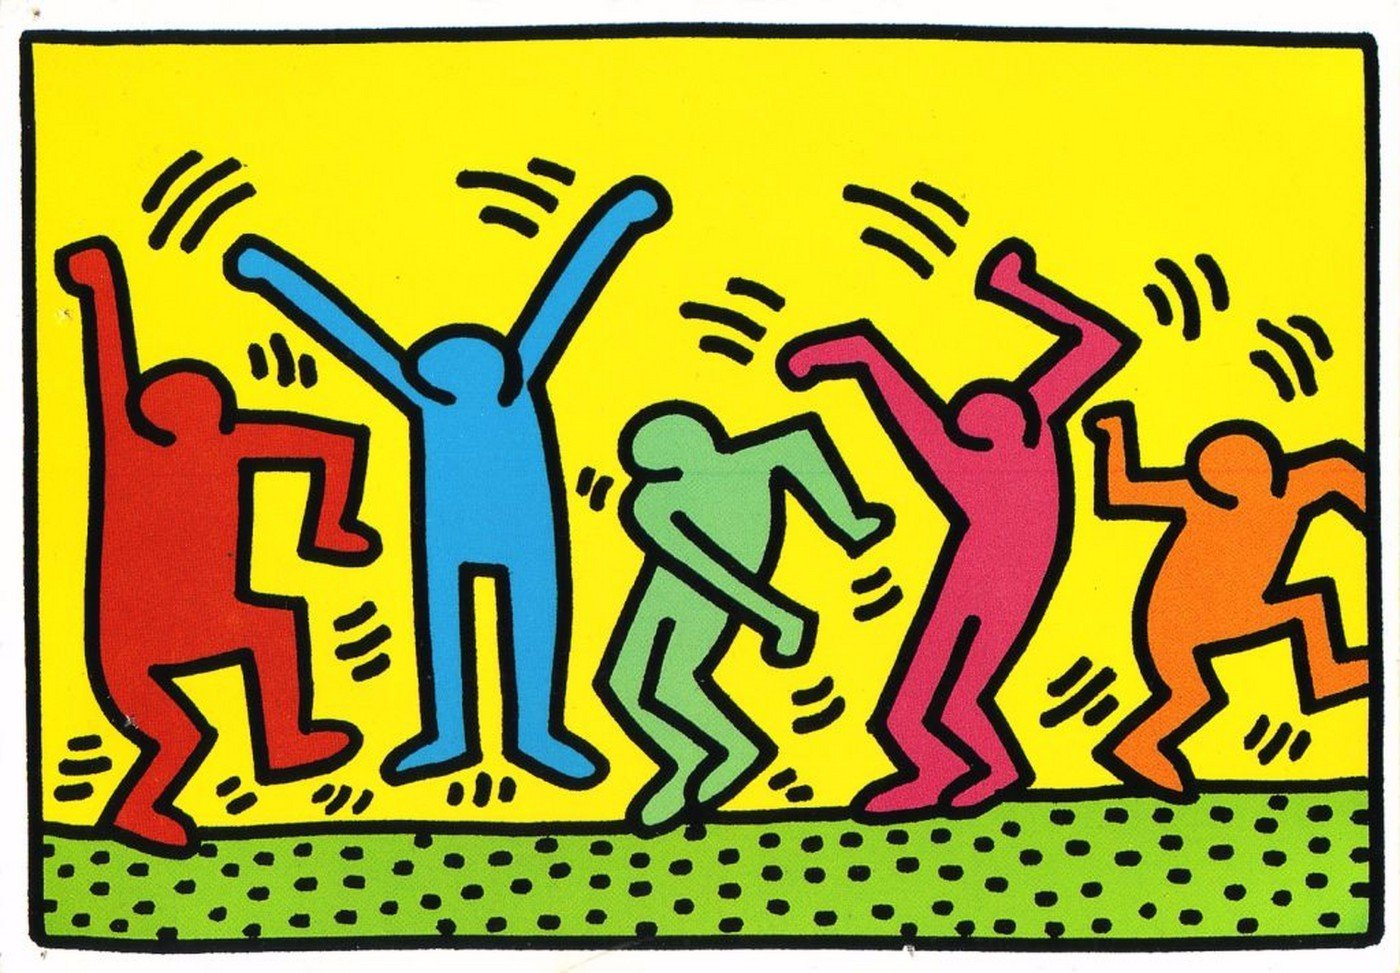 Dancing Figure - Posters by Keith Haring | Buy Posters, Frames ...